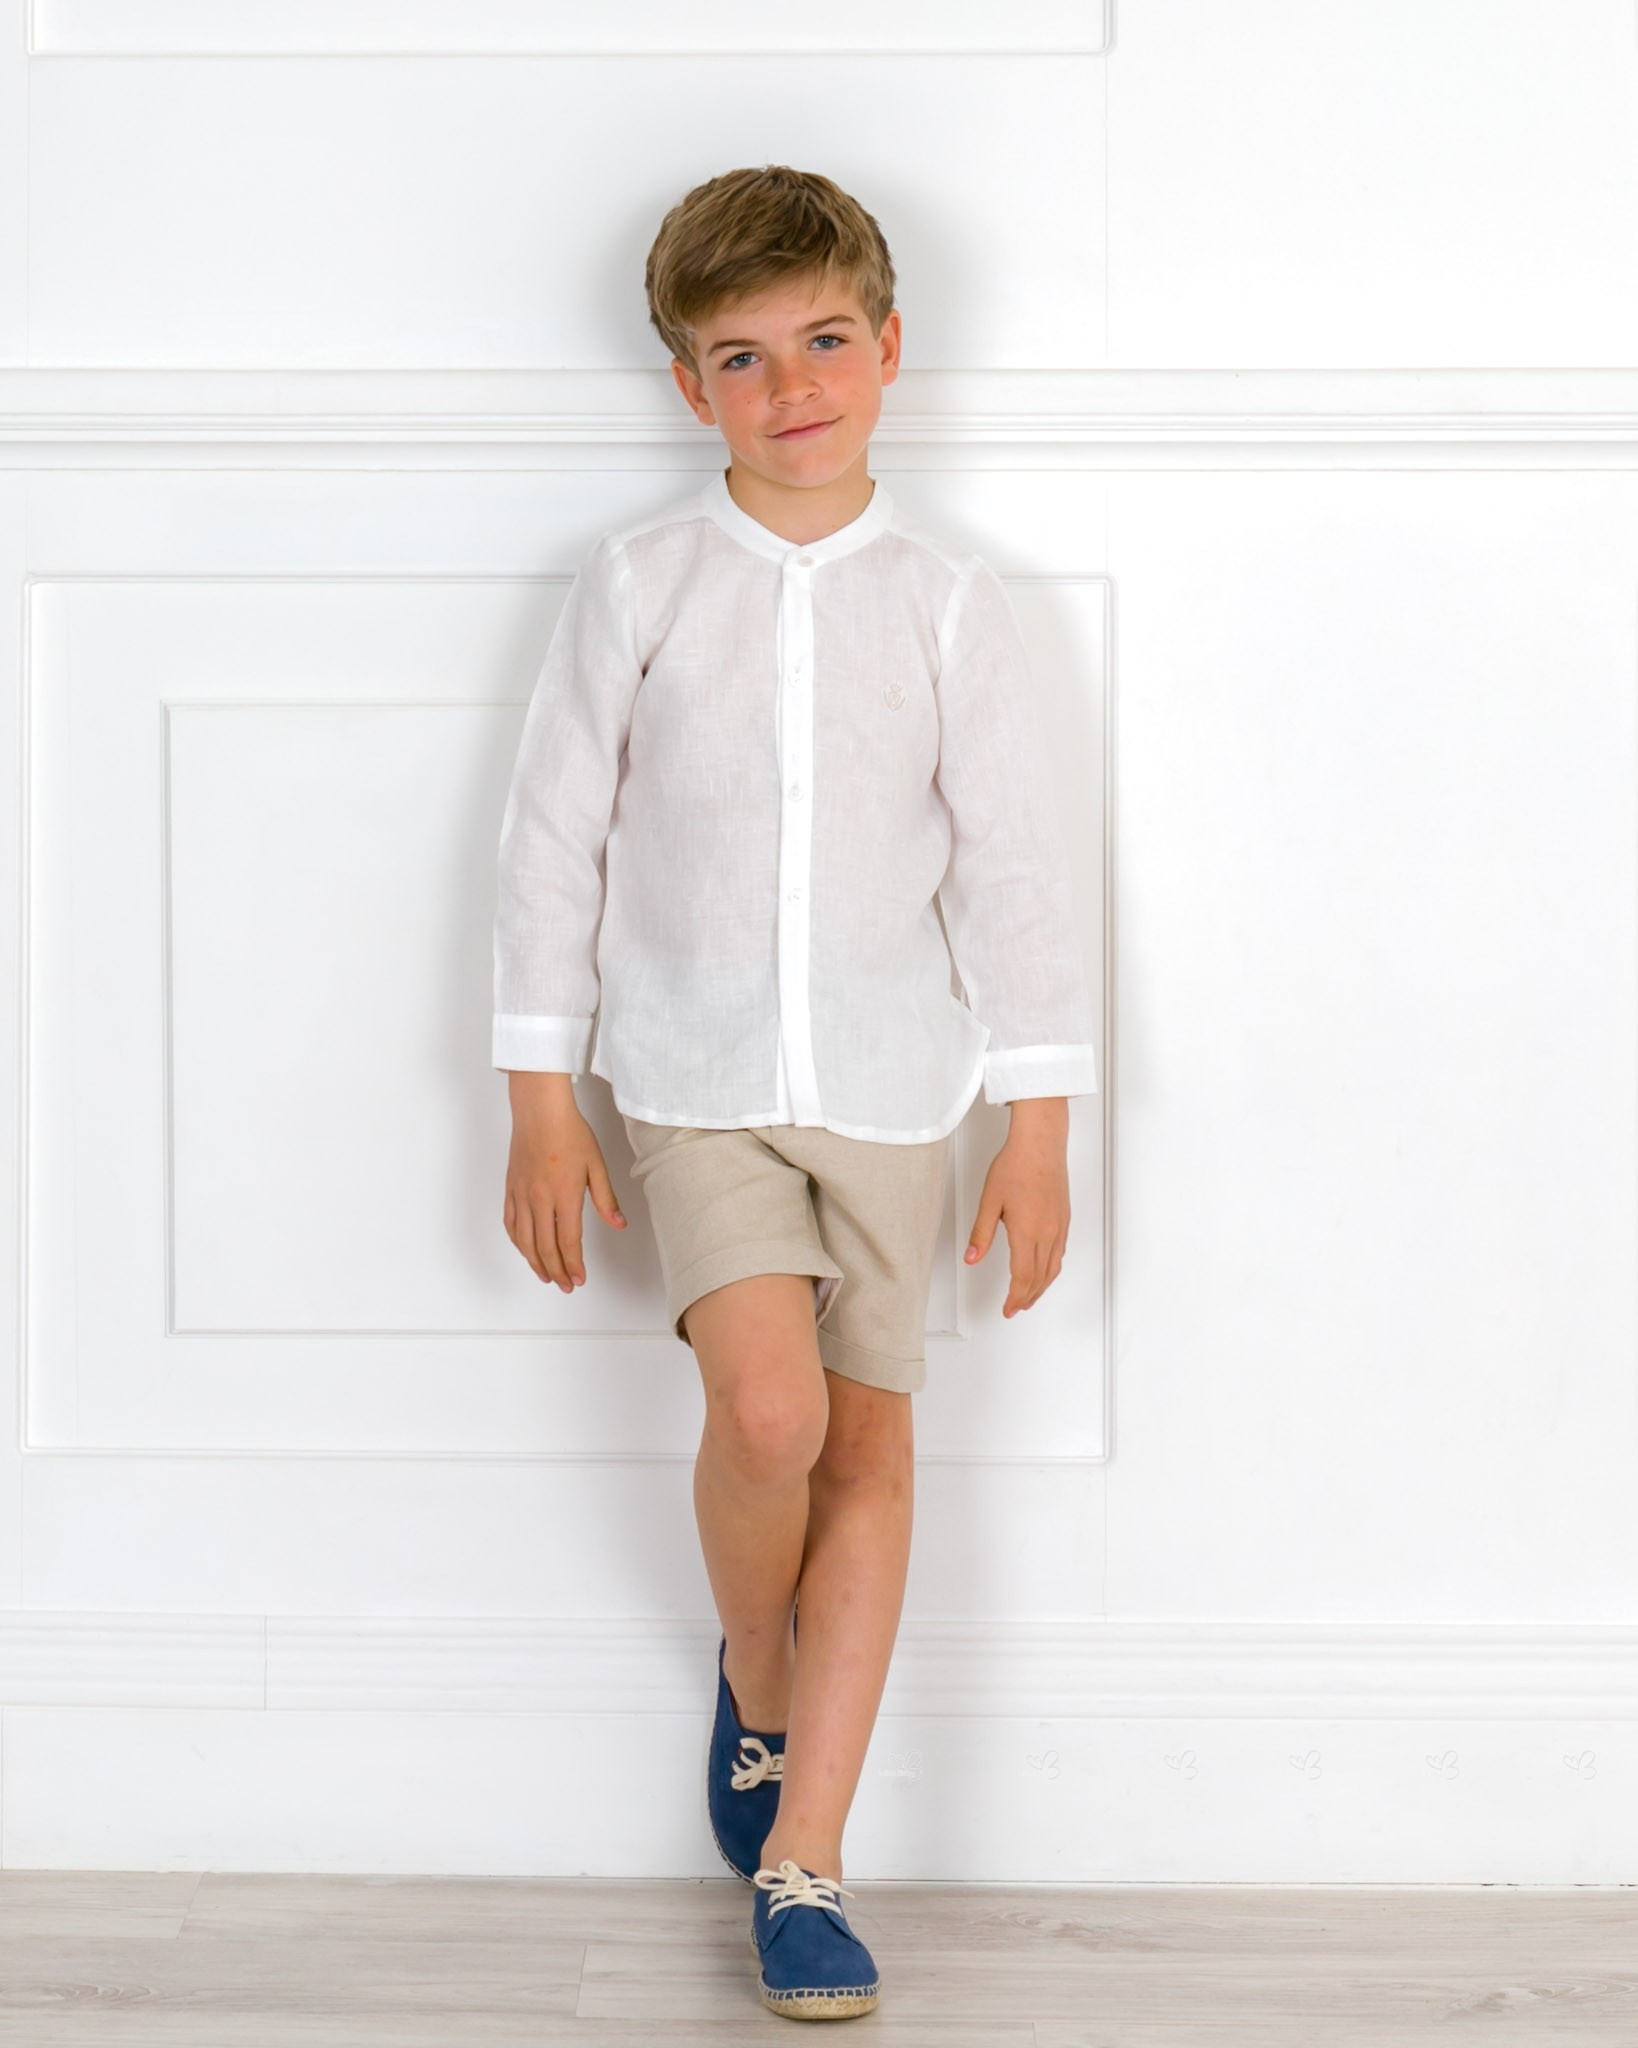 db1261f0cda Boys White Linen Shirt   Beige Short Set   Blue Espadrilles Outfit. Hover  to zoom